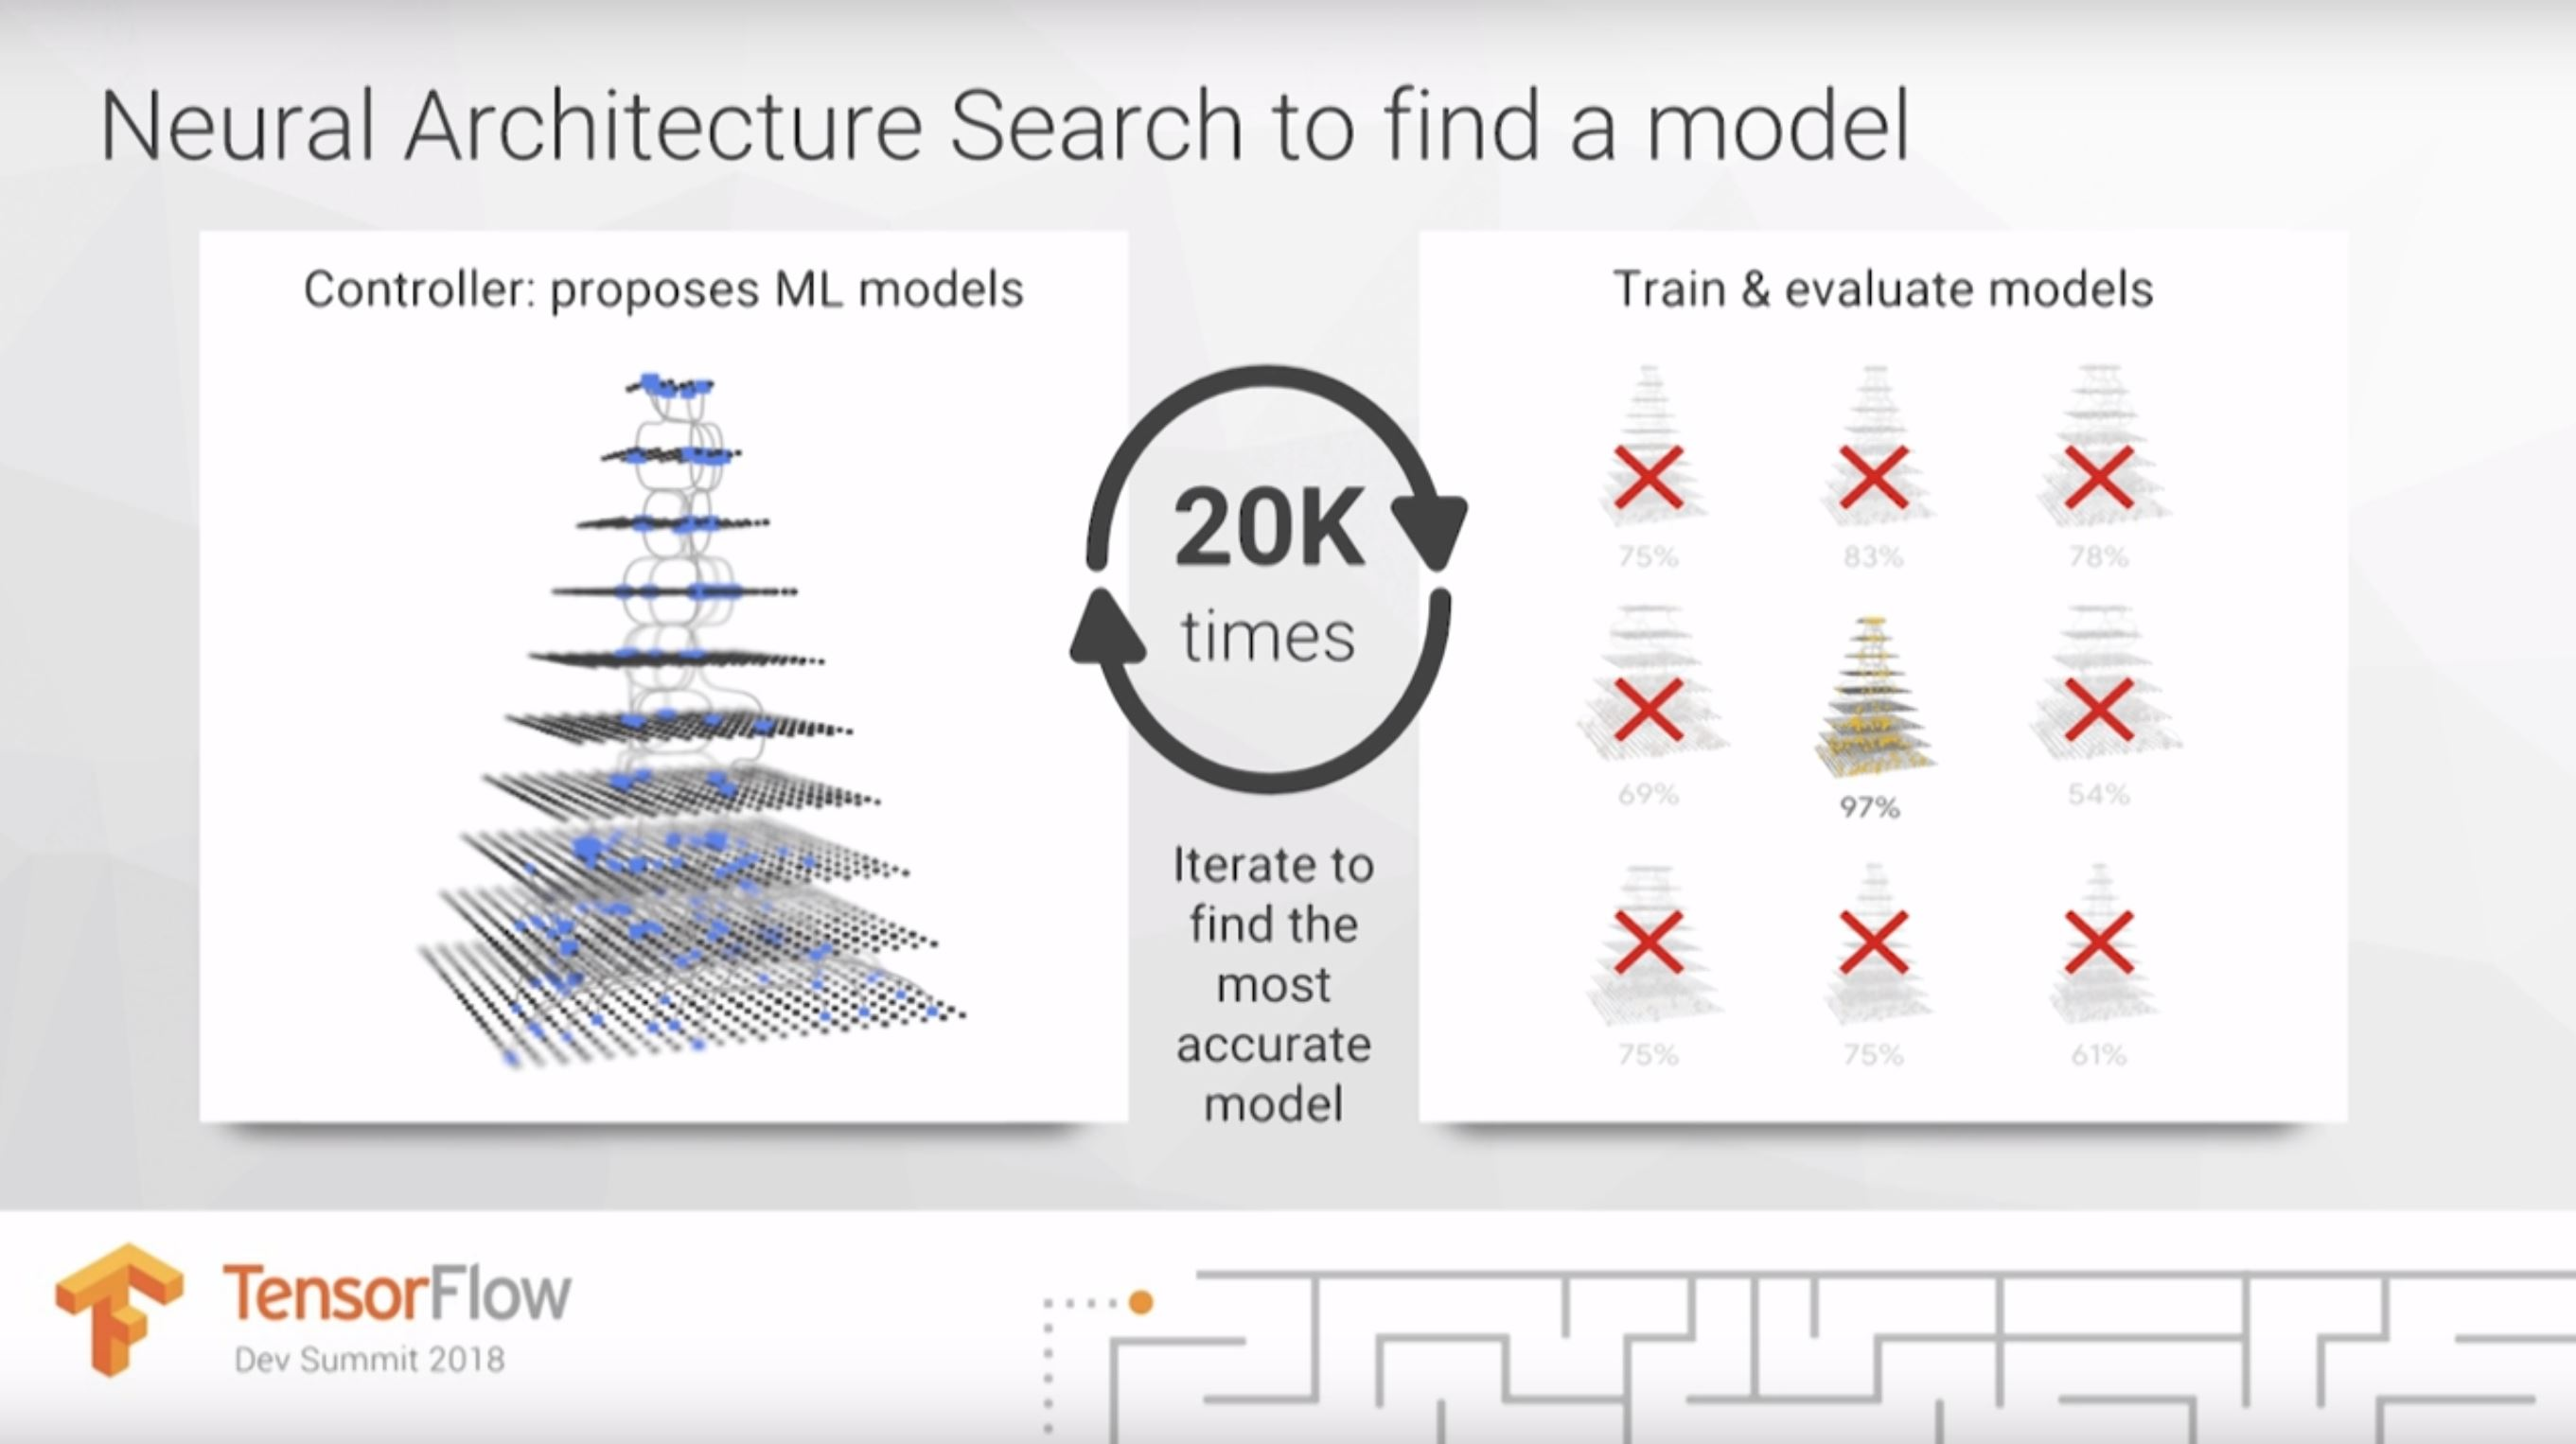 Jeff Dean's slide showing that neural architecture search can try 20 different models to find the most accurate